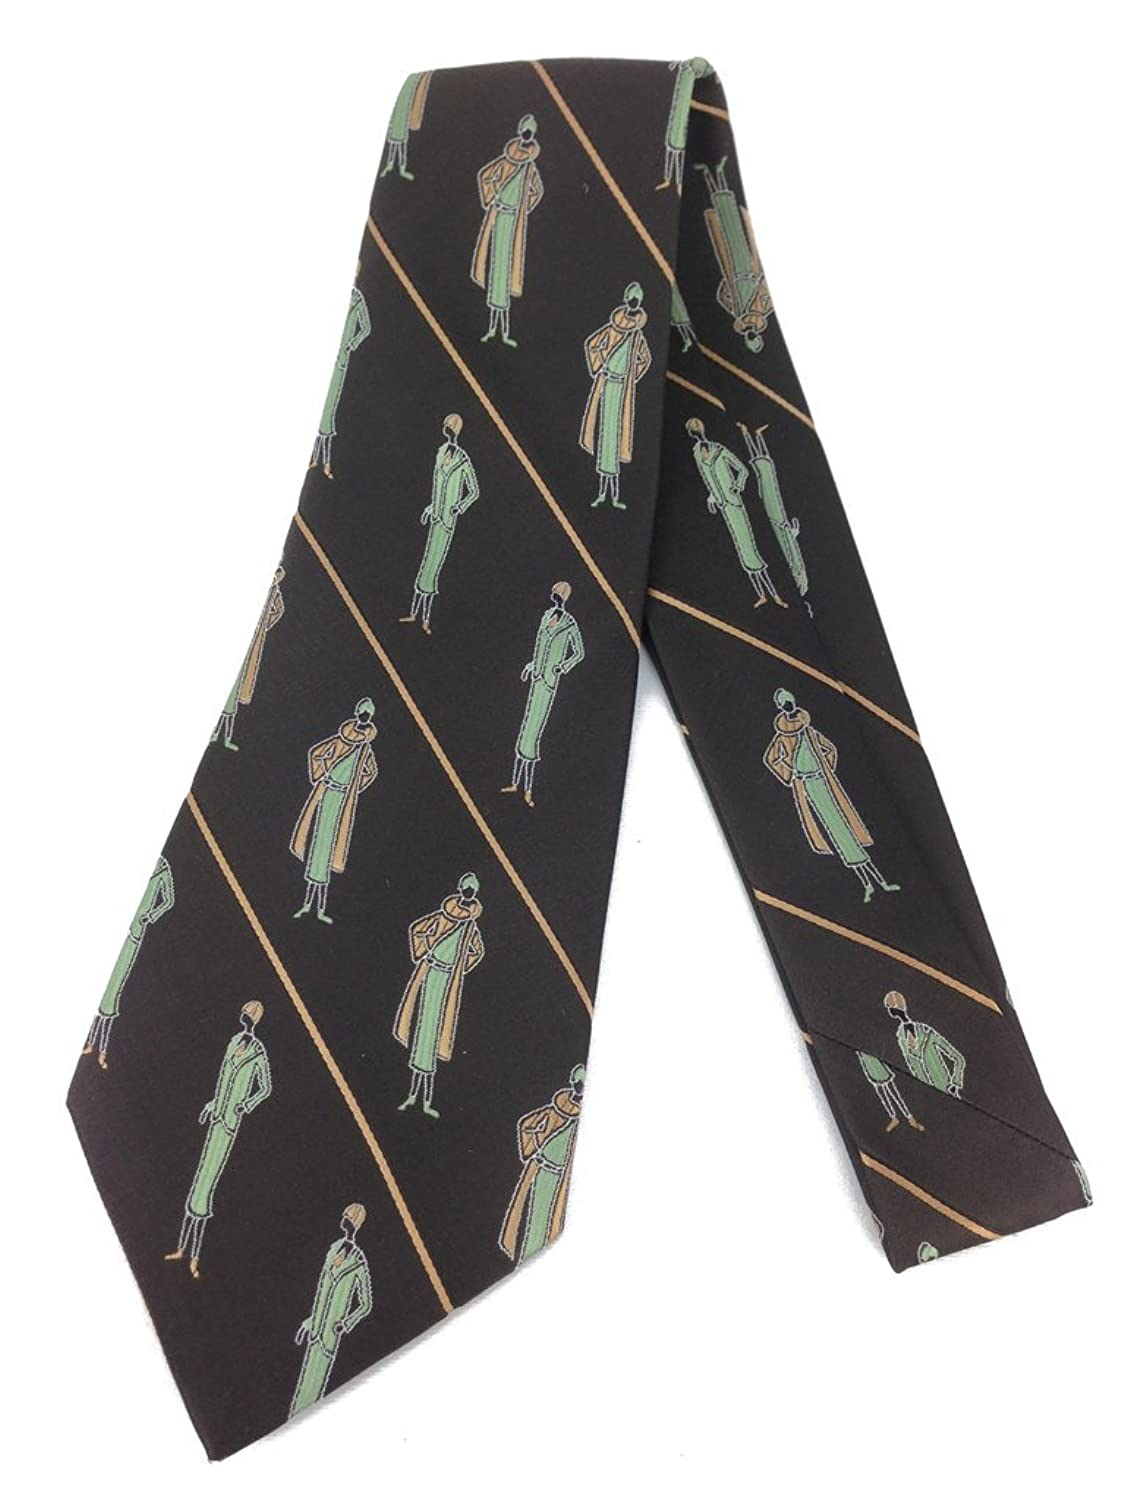 1920s Bow Ties | Gatsby Tie,  Art Deco Tie Lady Art Deco Vintage Tie - Jacquard Weave Wide Kipper Necktie Stripe $24.95 AT vintagedancer.com